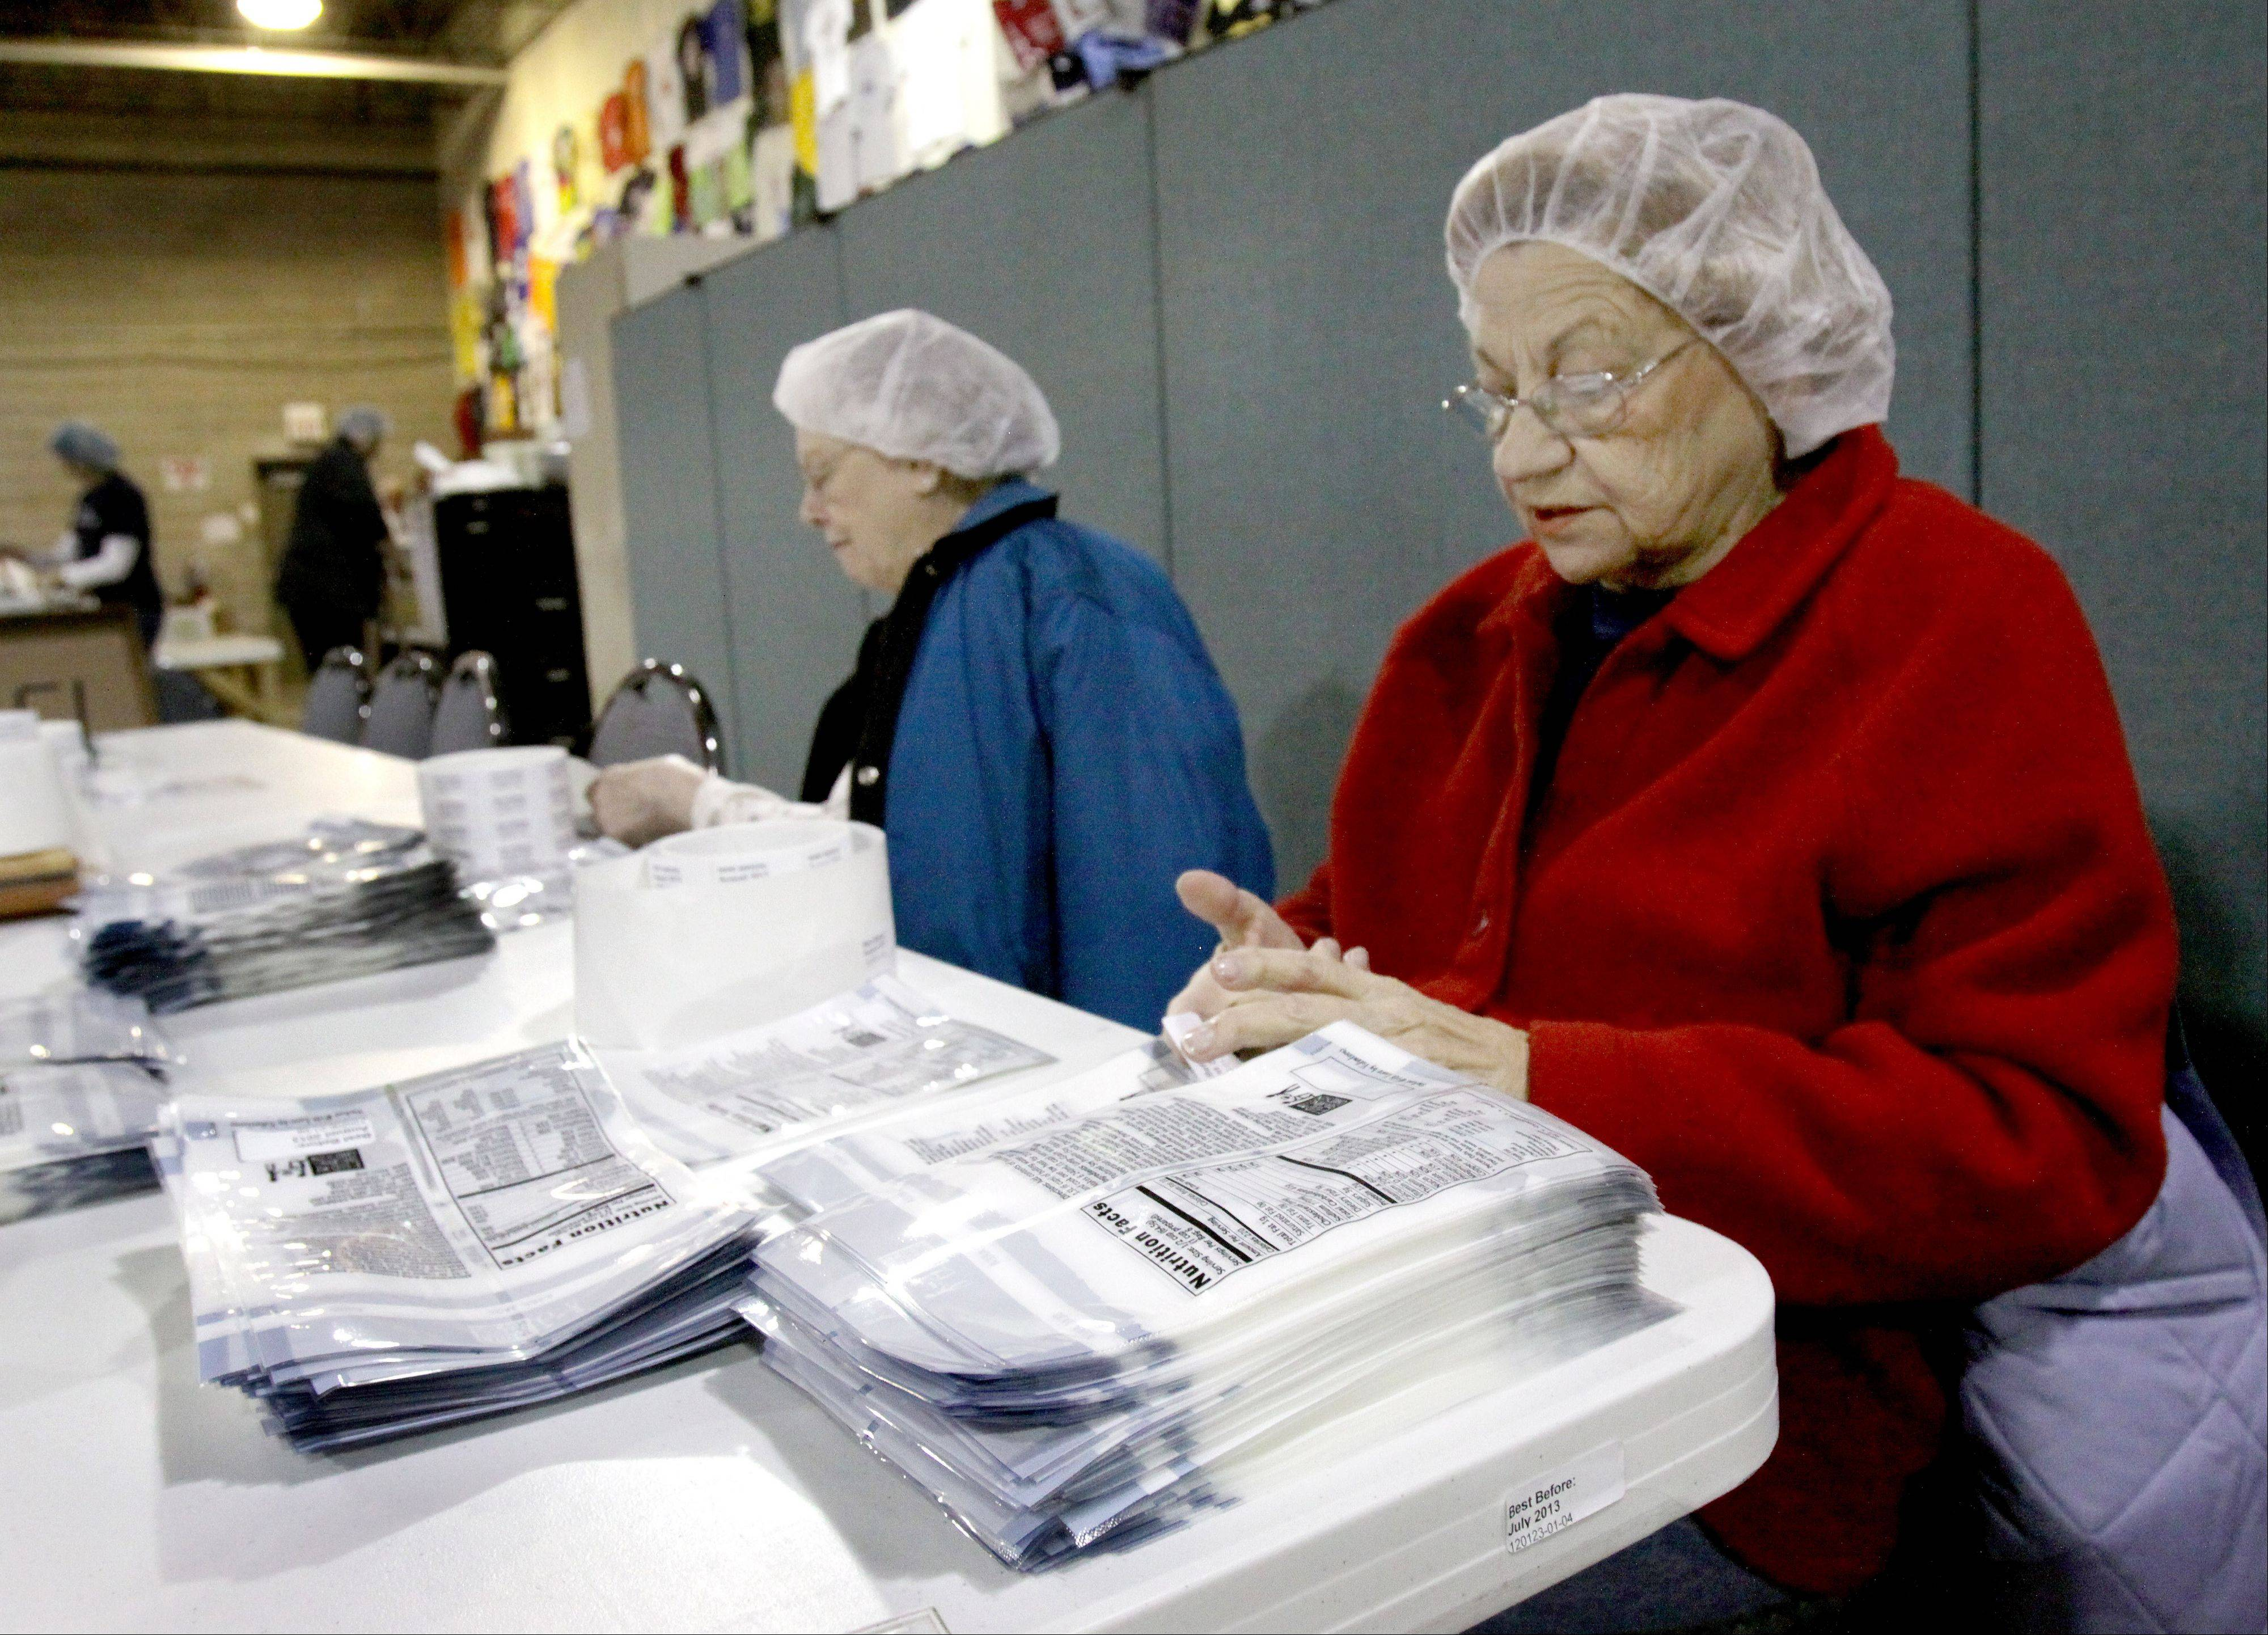 Volunteers Alberta Bergeron, left, and Pat Backer, right, both of Naperville, work at putting expiration dates on bags for meals at Feed My Starving Children in Aurora.